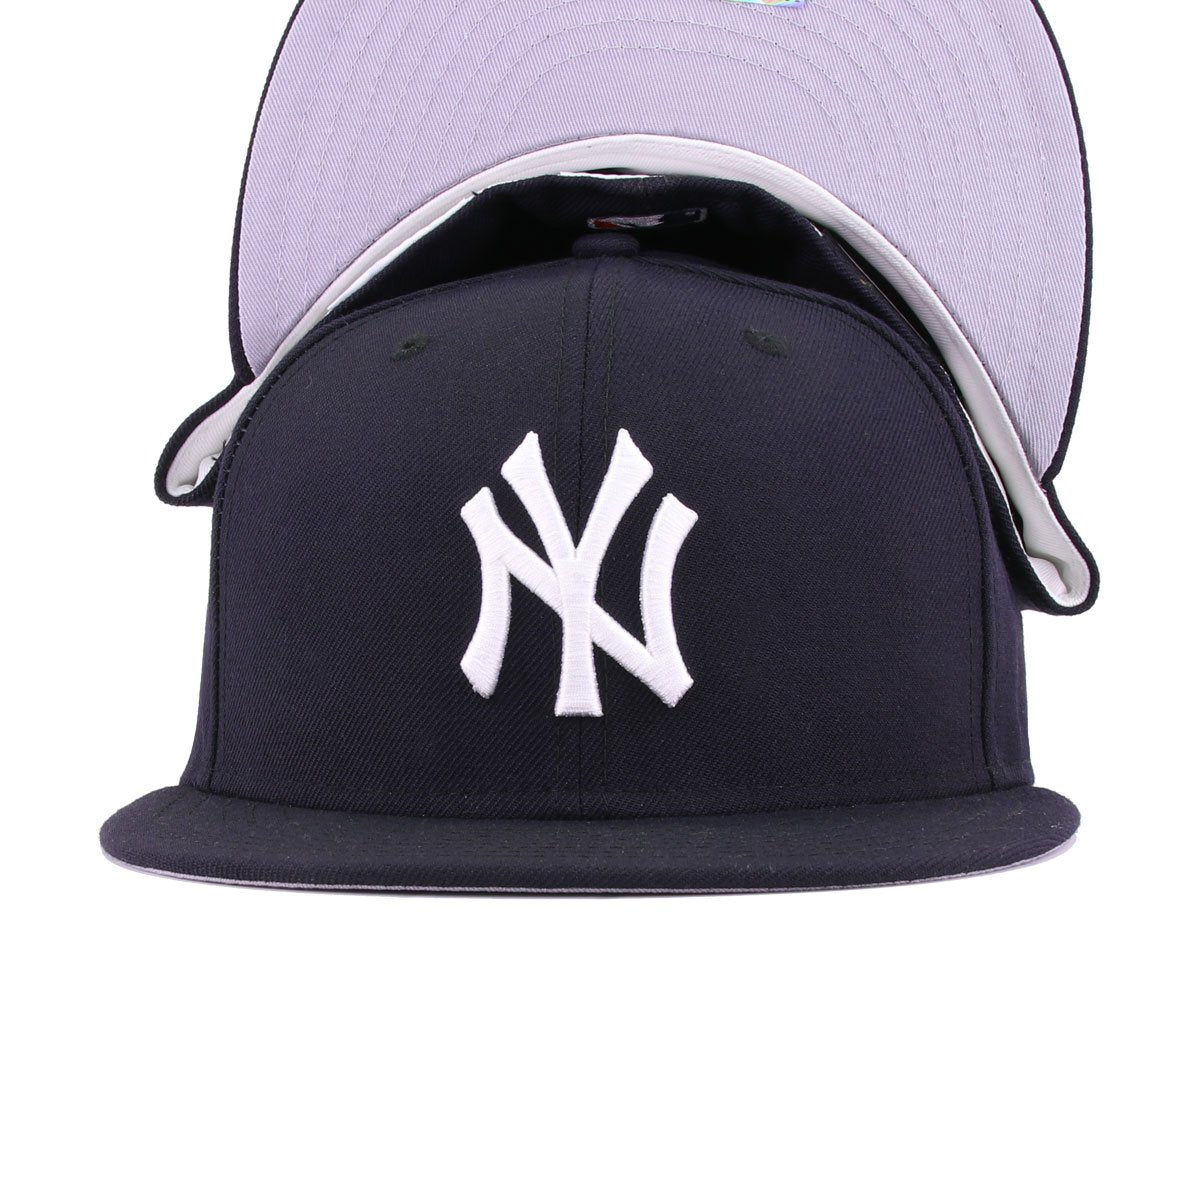 "New Era 59FIFTY New York Mets /""Yankee Hater/"" Fitted Hat Cap All NAVY//White"